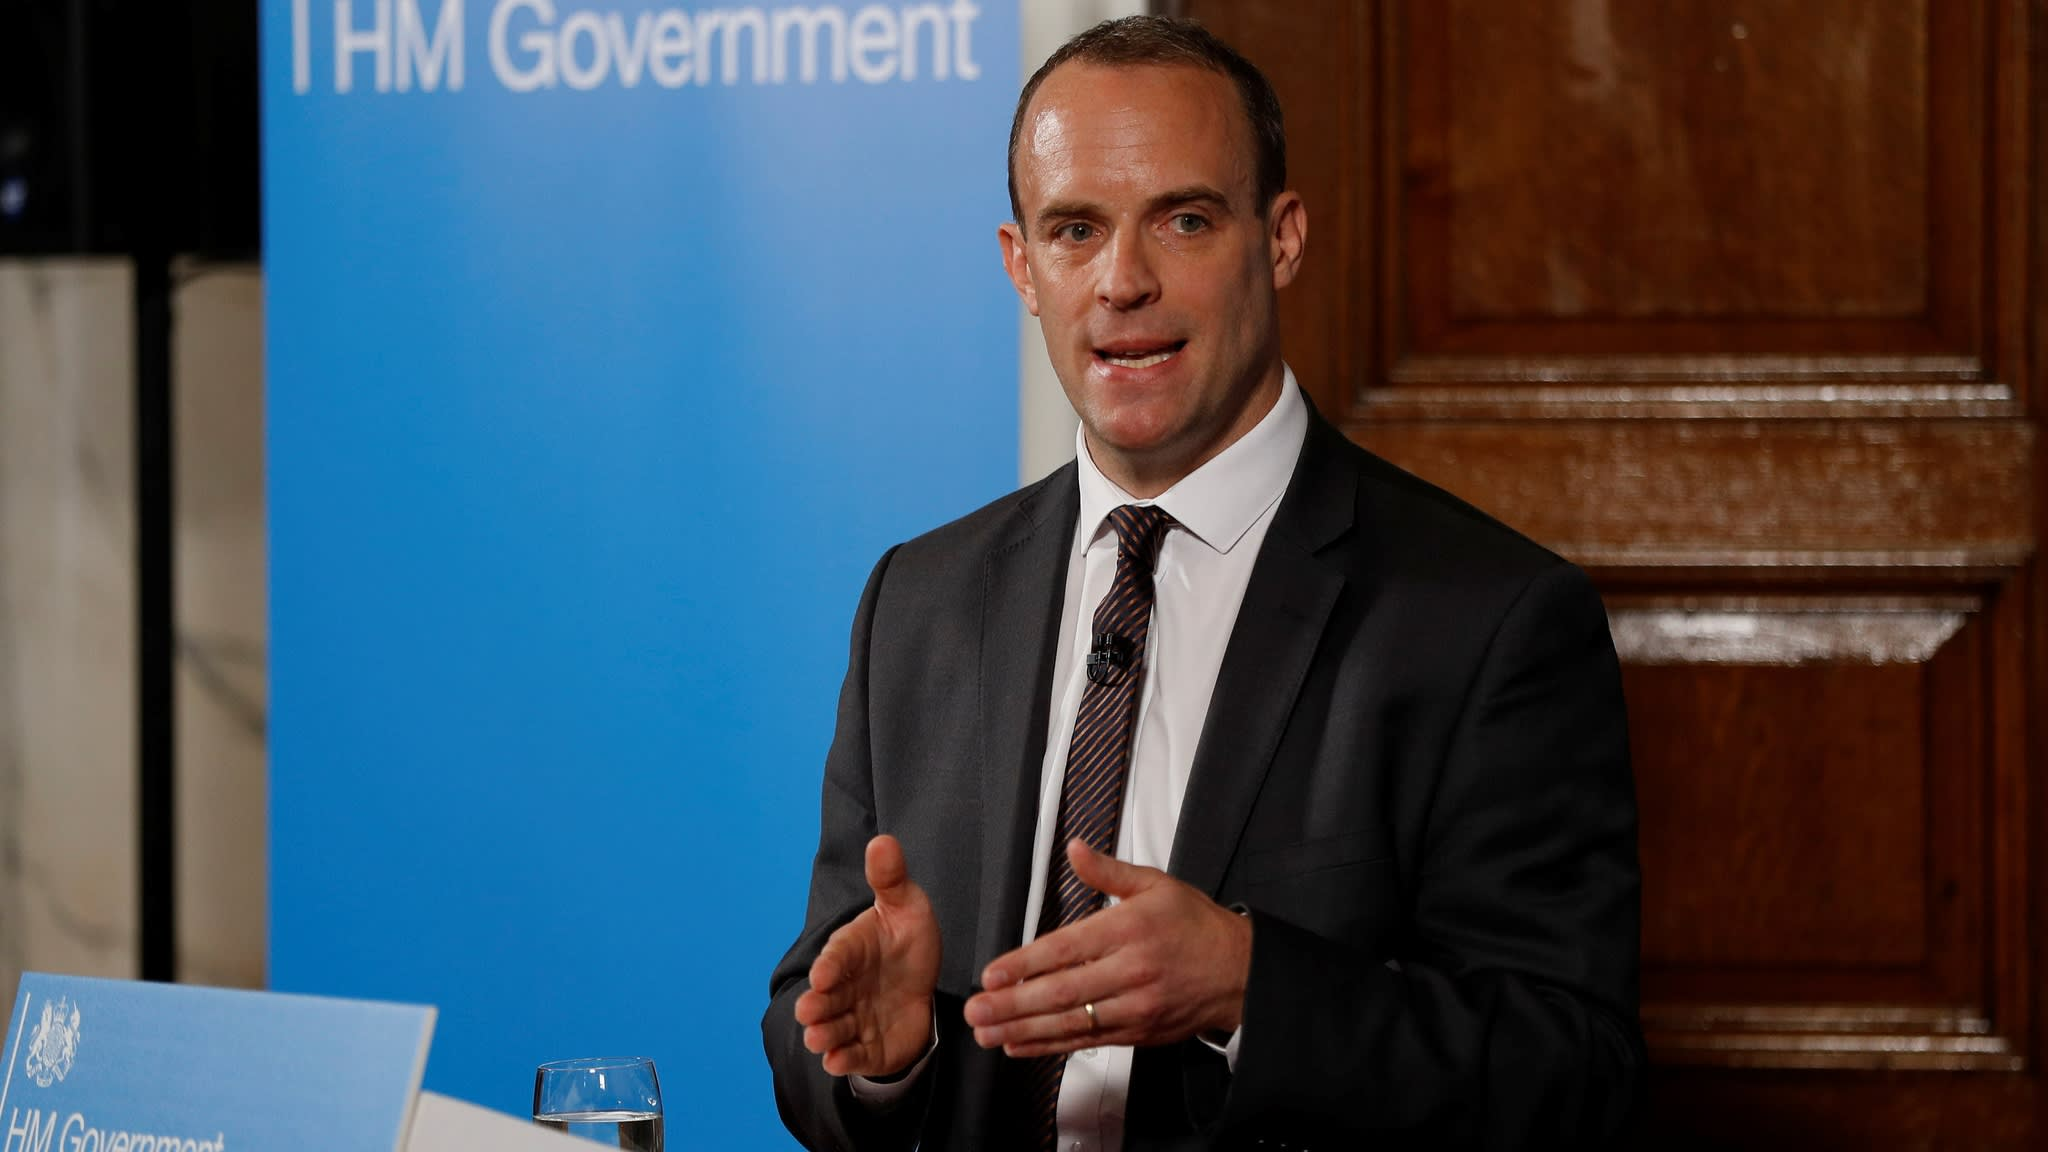 Raab: 'confident good Brexit deal is most likely outcome'